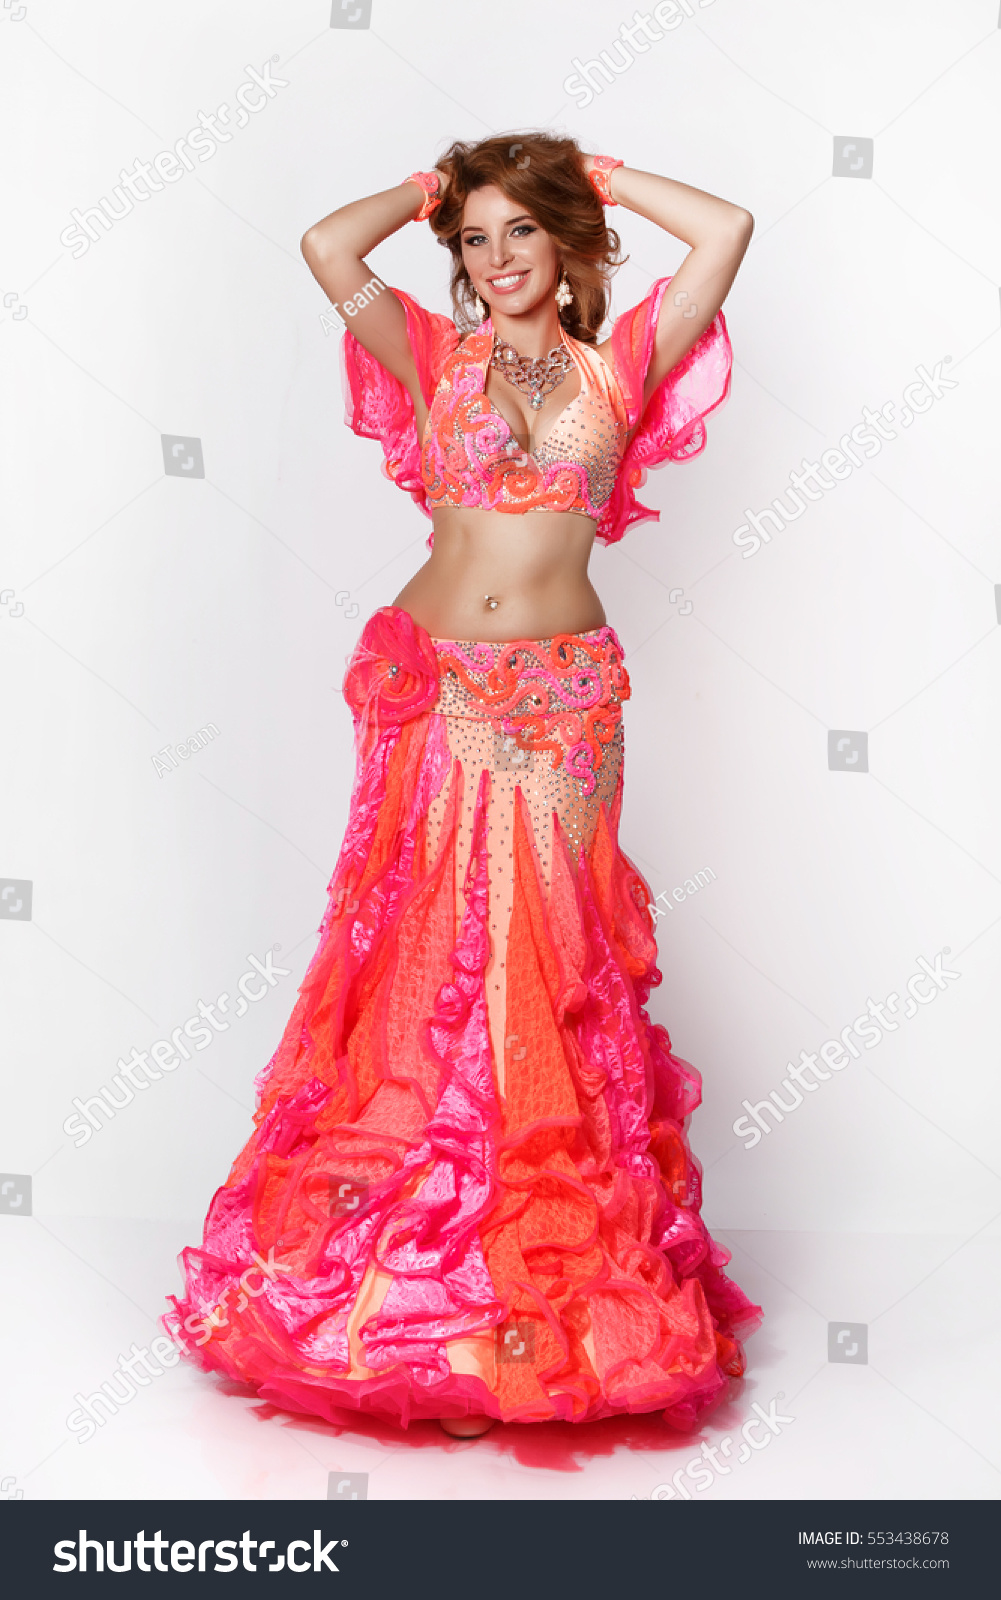 Beautiful Arabic Belly Dancer Harem Woman Plus Size In Orange Dress And Jewelry Dancing Arms In